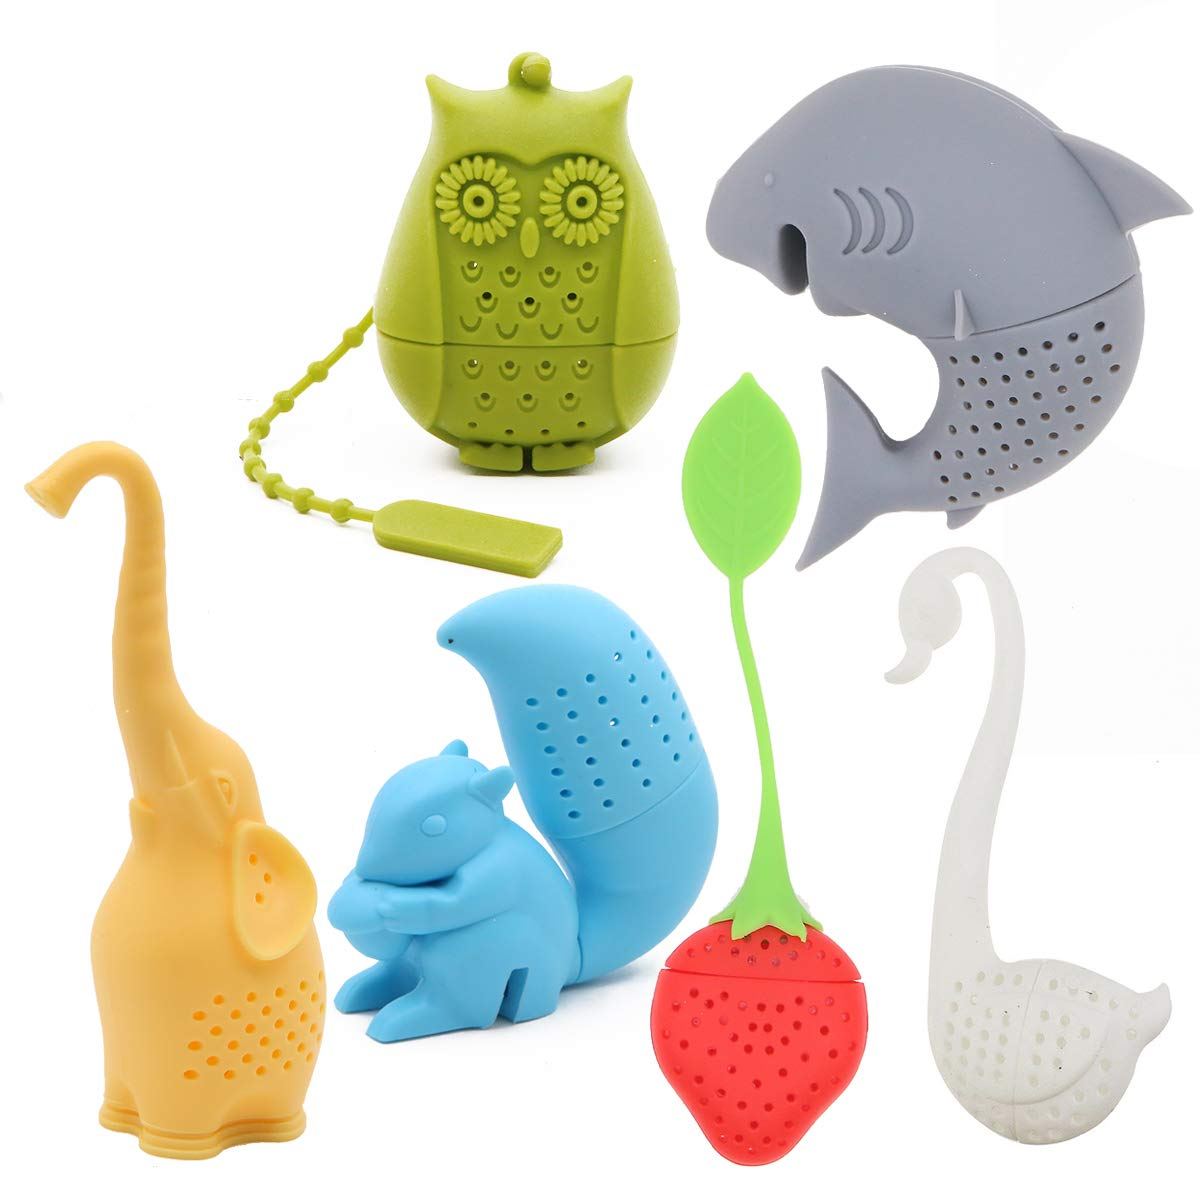 Creative Cute Animal Eco-friendly Silicone Tea Infuser Strainer Set of 6 PCS Elephant Shark Swan Squirrel Strawberry Owl Tea Steeper Tea Lover's Gift Winterworm